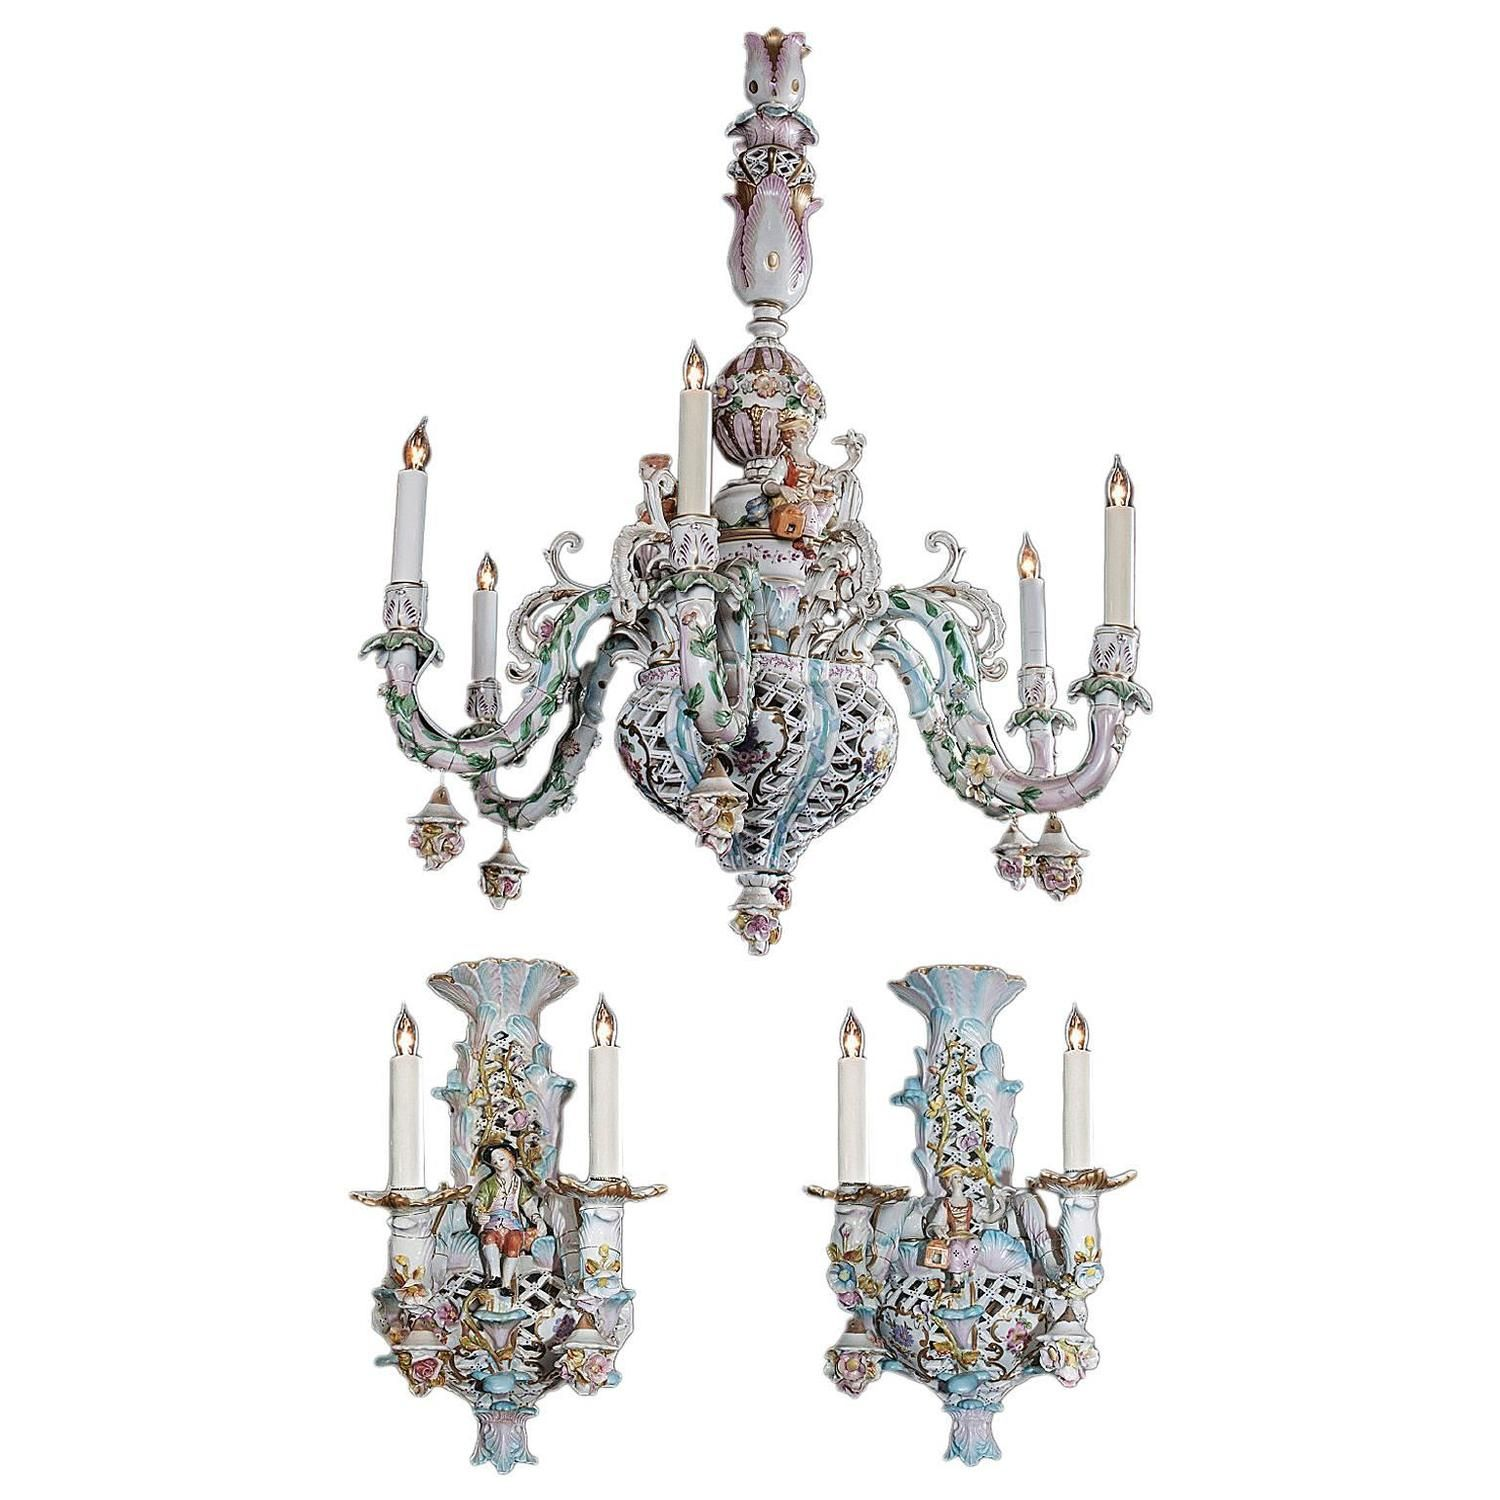 Capodimonte Italian Porcelain Chandelier And Sconces